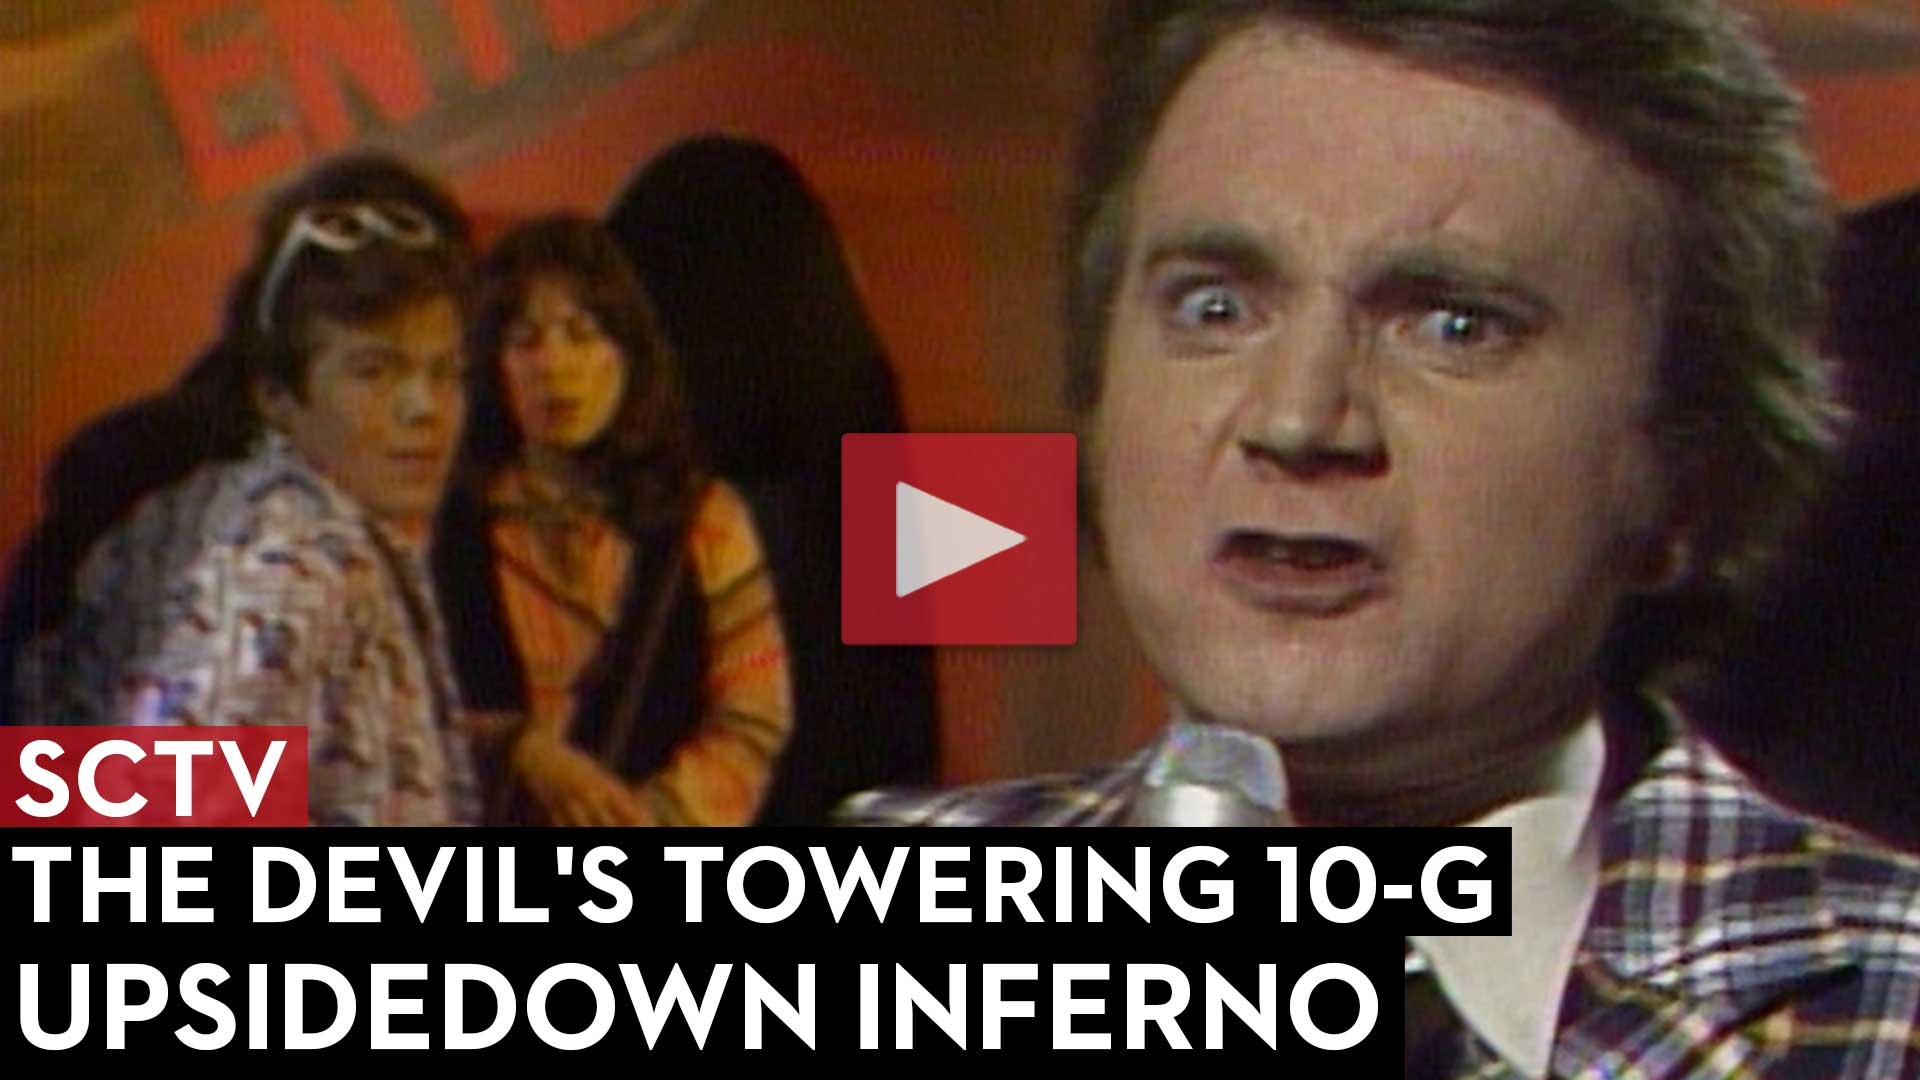 SCTV The Devil's Towering 10-G Upsidedown Inferno